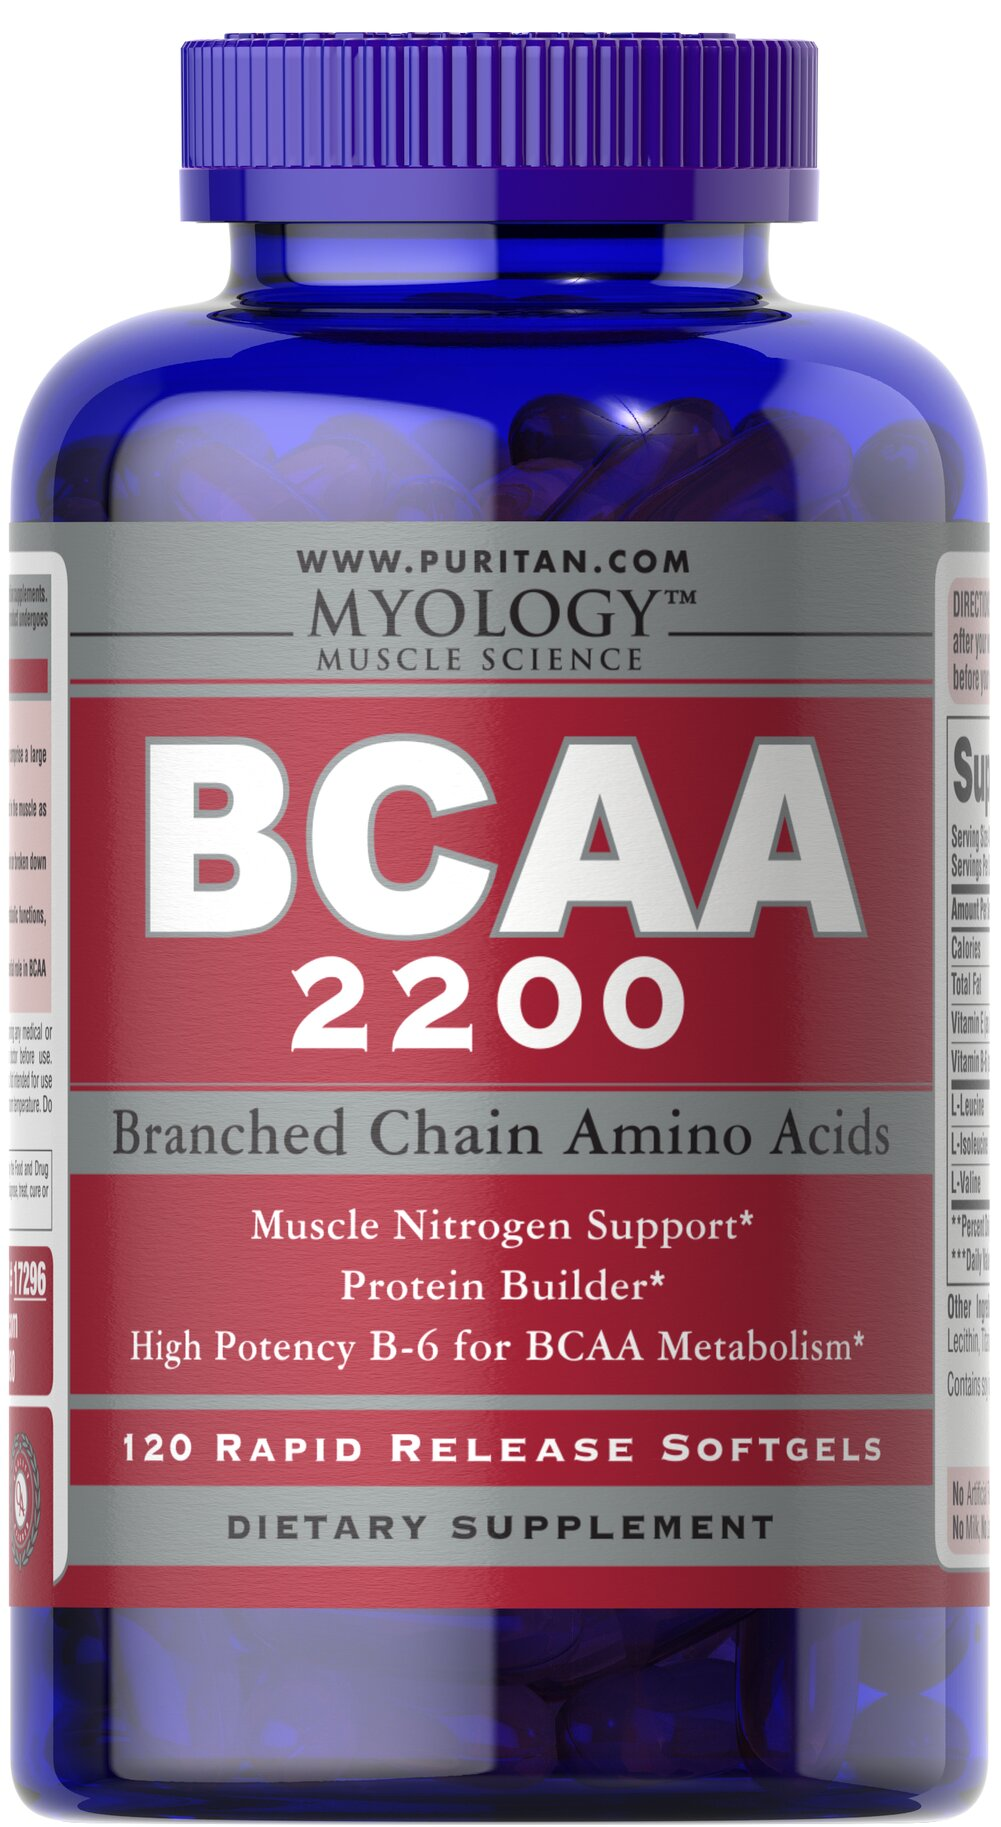 BCAA 2200 <p>BCAAs are especially important for bodybuilders since they comprise a large percentage of the amino acid composition of muscle.**</p>  <p>BCAAs are also the only aminos that are directly metabolized in the muscle as opposed to the liver.</p>  <p>Provides dual benefits since BCAAs can be used to build protein or broken down in muscle to supply a direct source of energy.**</p>  <p>BCAAs provide muscle nitrogen support for a variety of metaboli